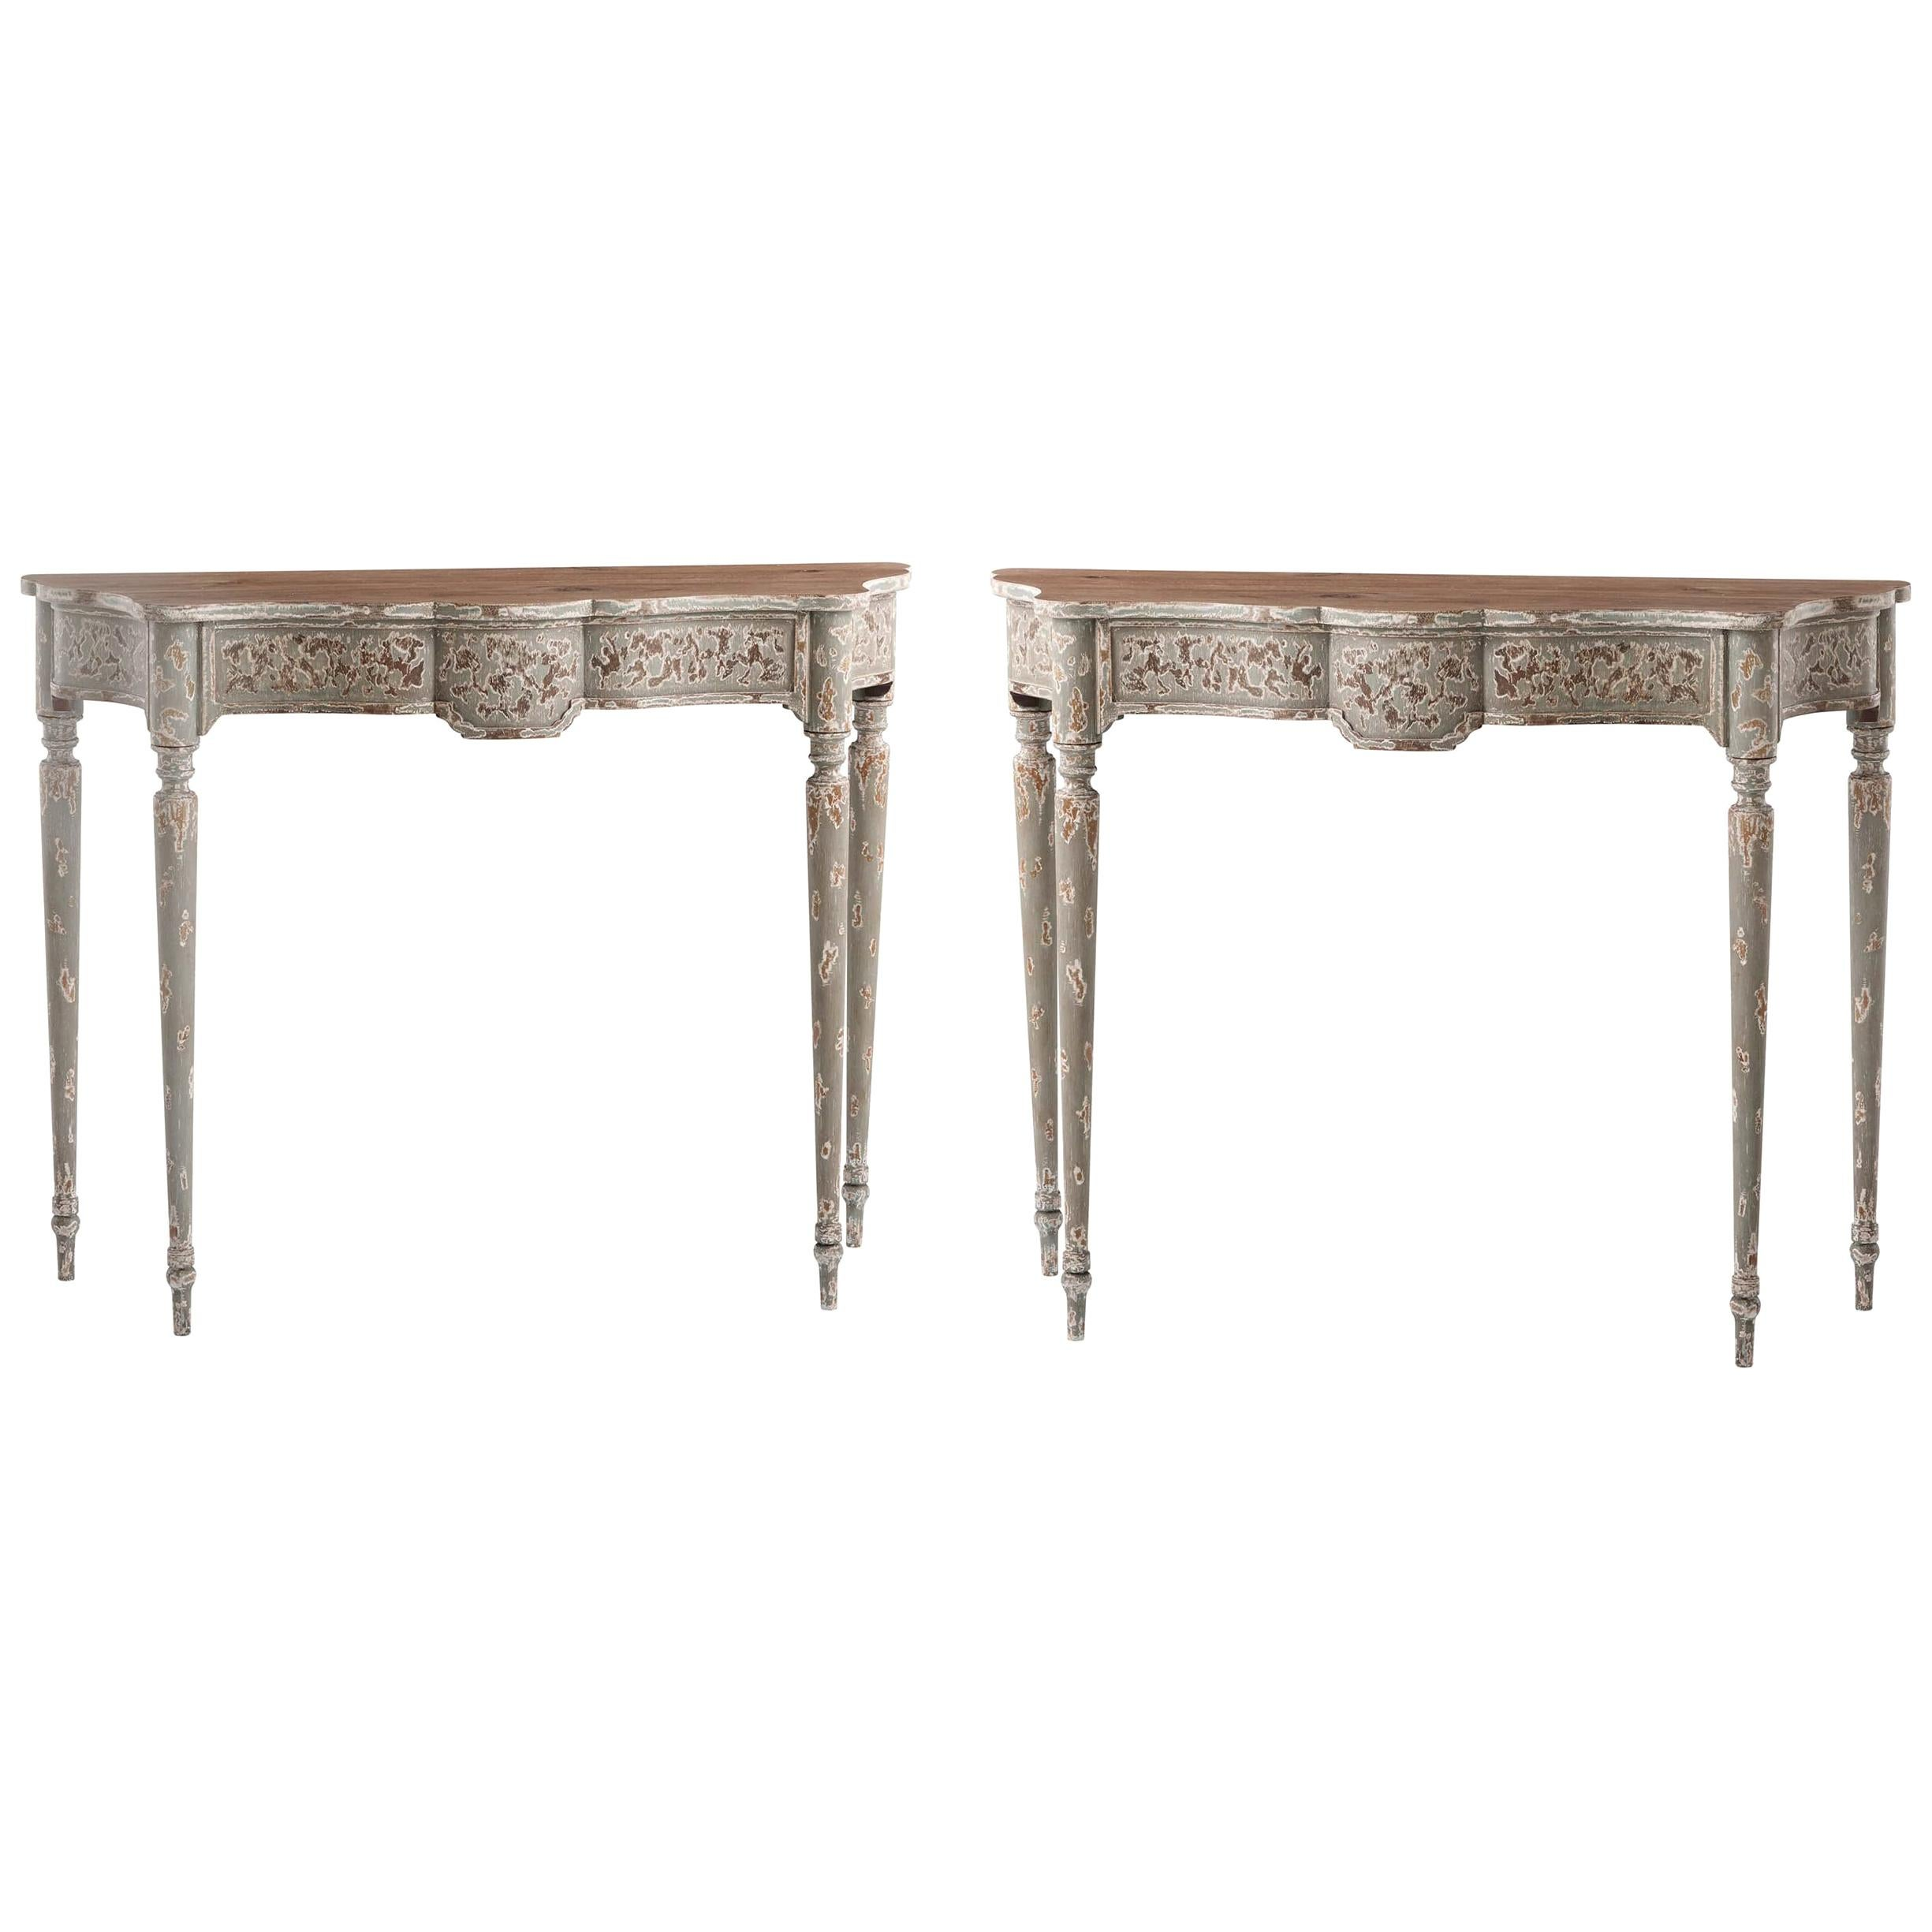 Pair of French Provincial Console Tables